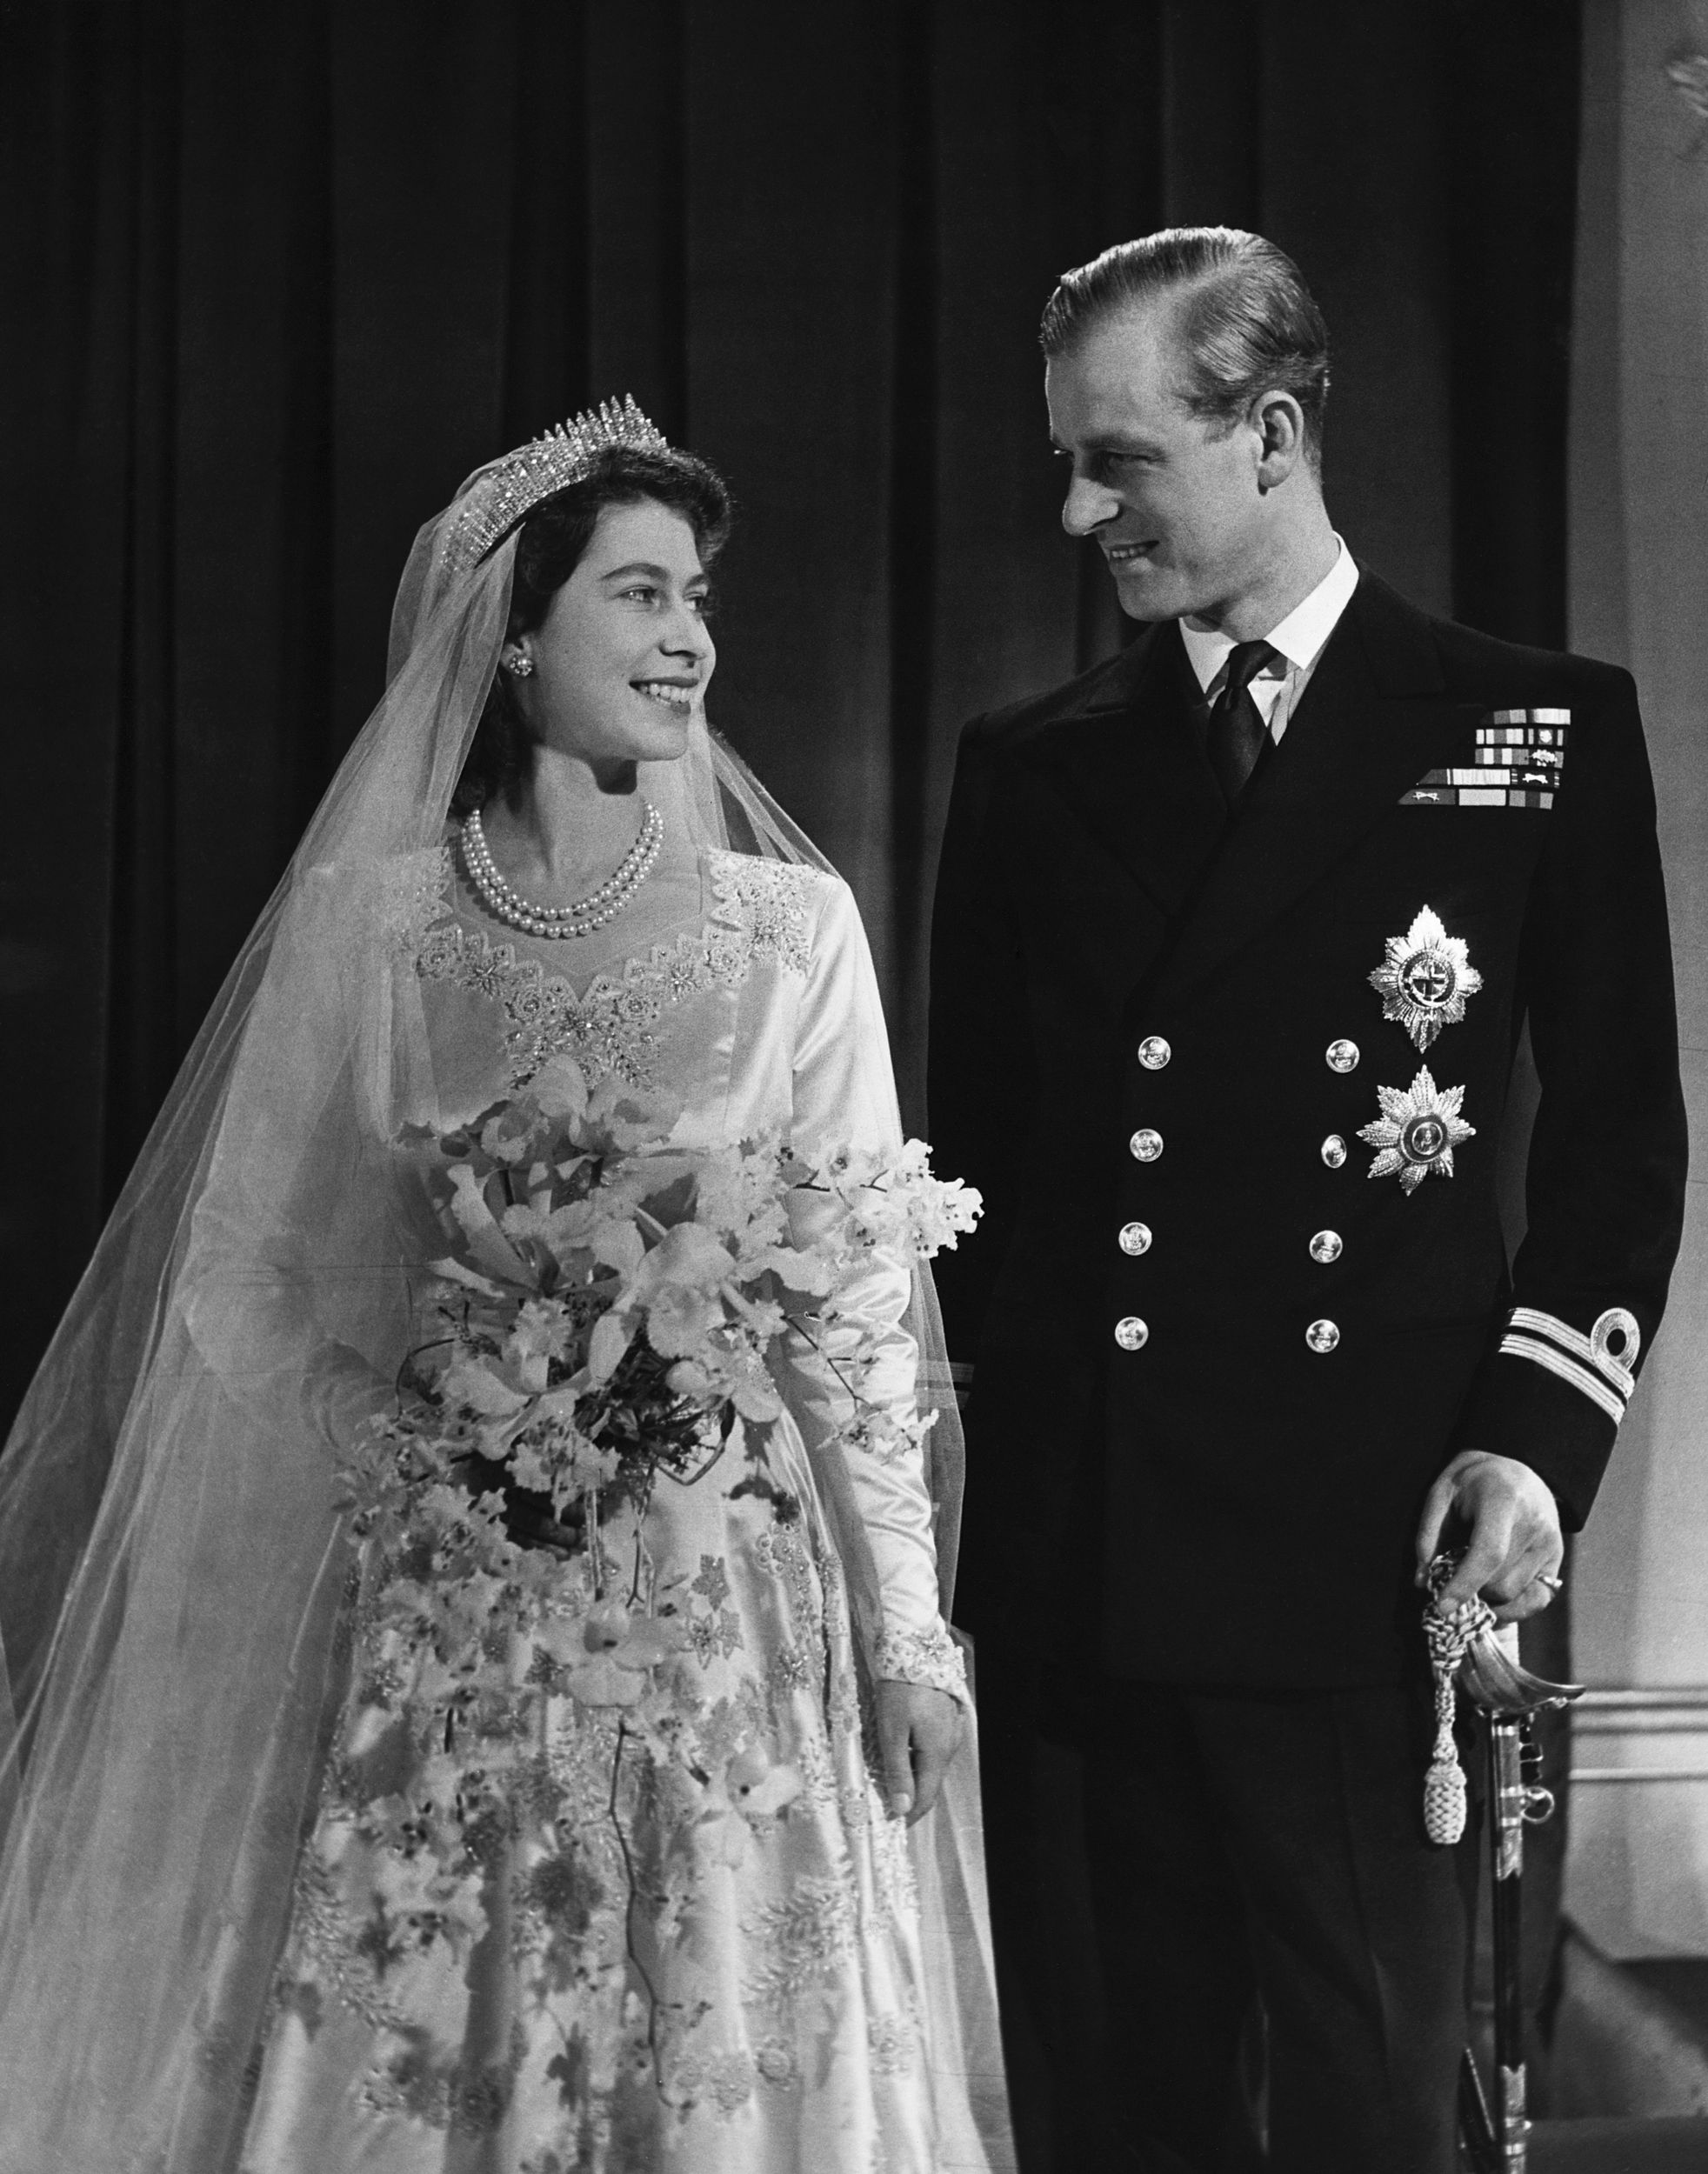 Queen Elizabeth II and The Duke of Edinburgh celebrate